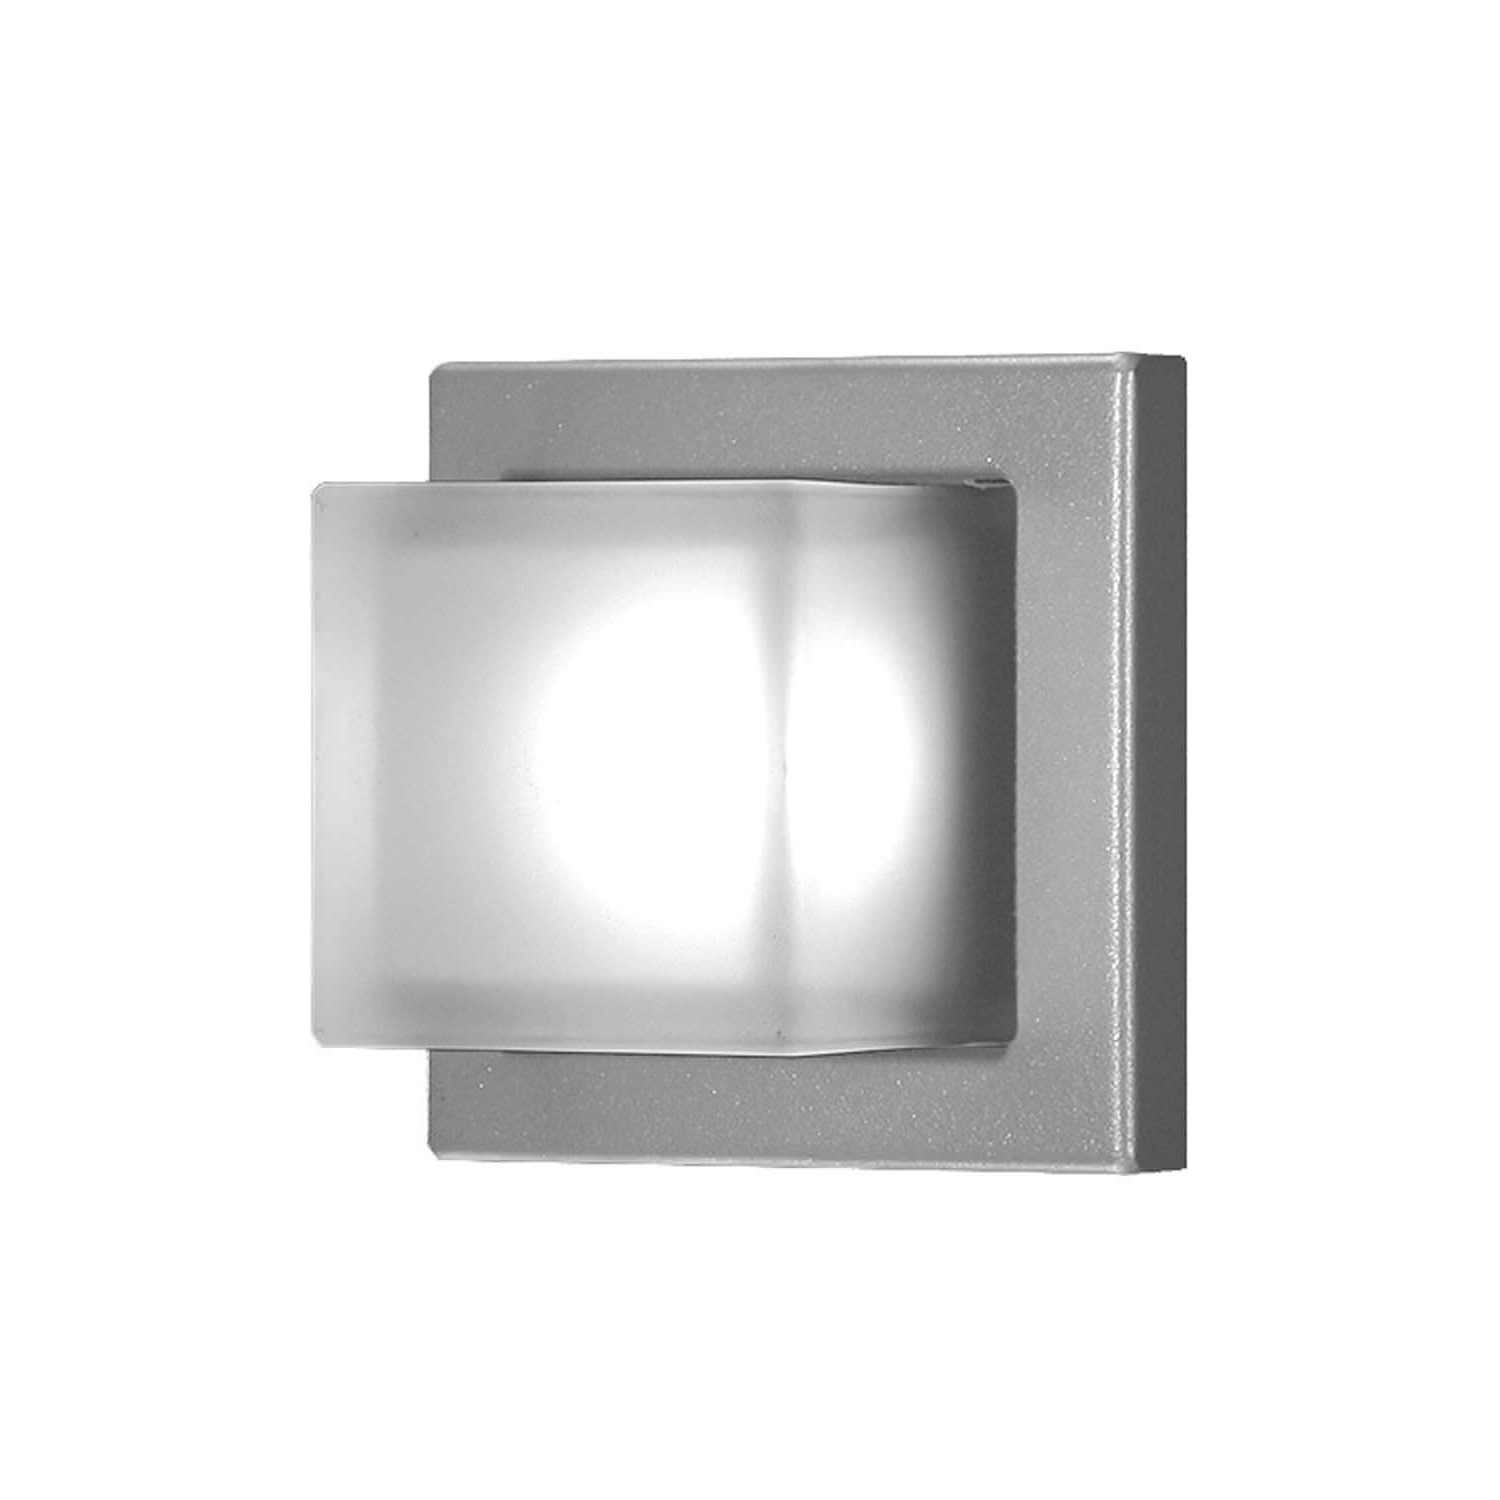 Outdoor Led Wall Lights For House Sign With Door Number In Well Known Outdoor Light : Outdoor Wall Lights Energy Star Captivating Exterior (View 18 of 20)